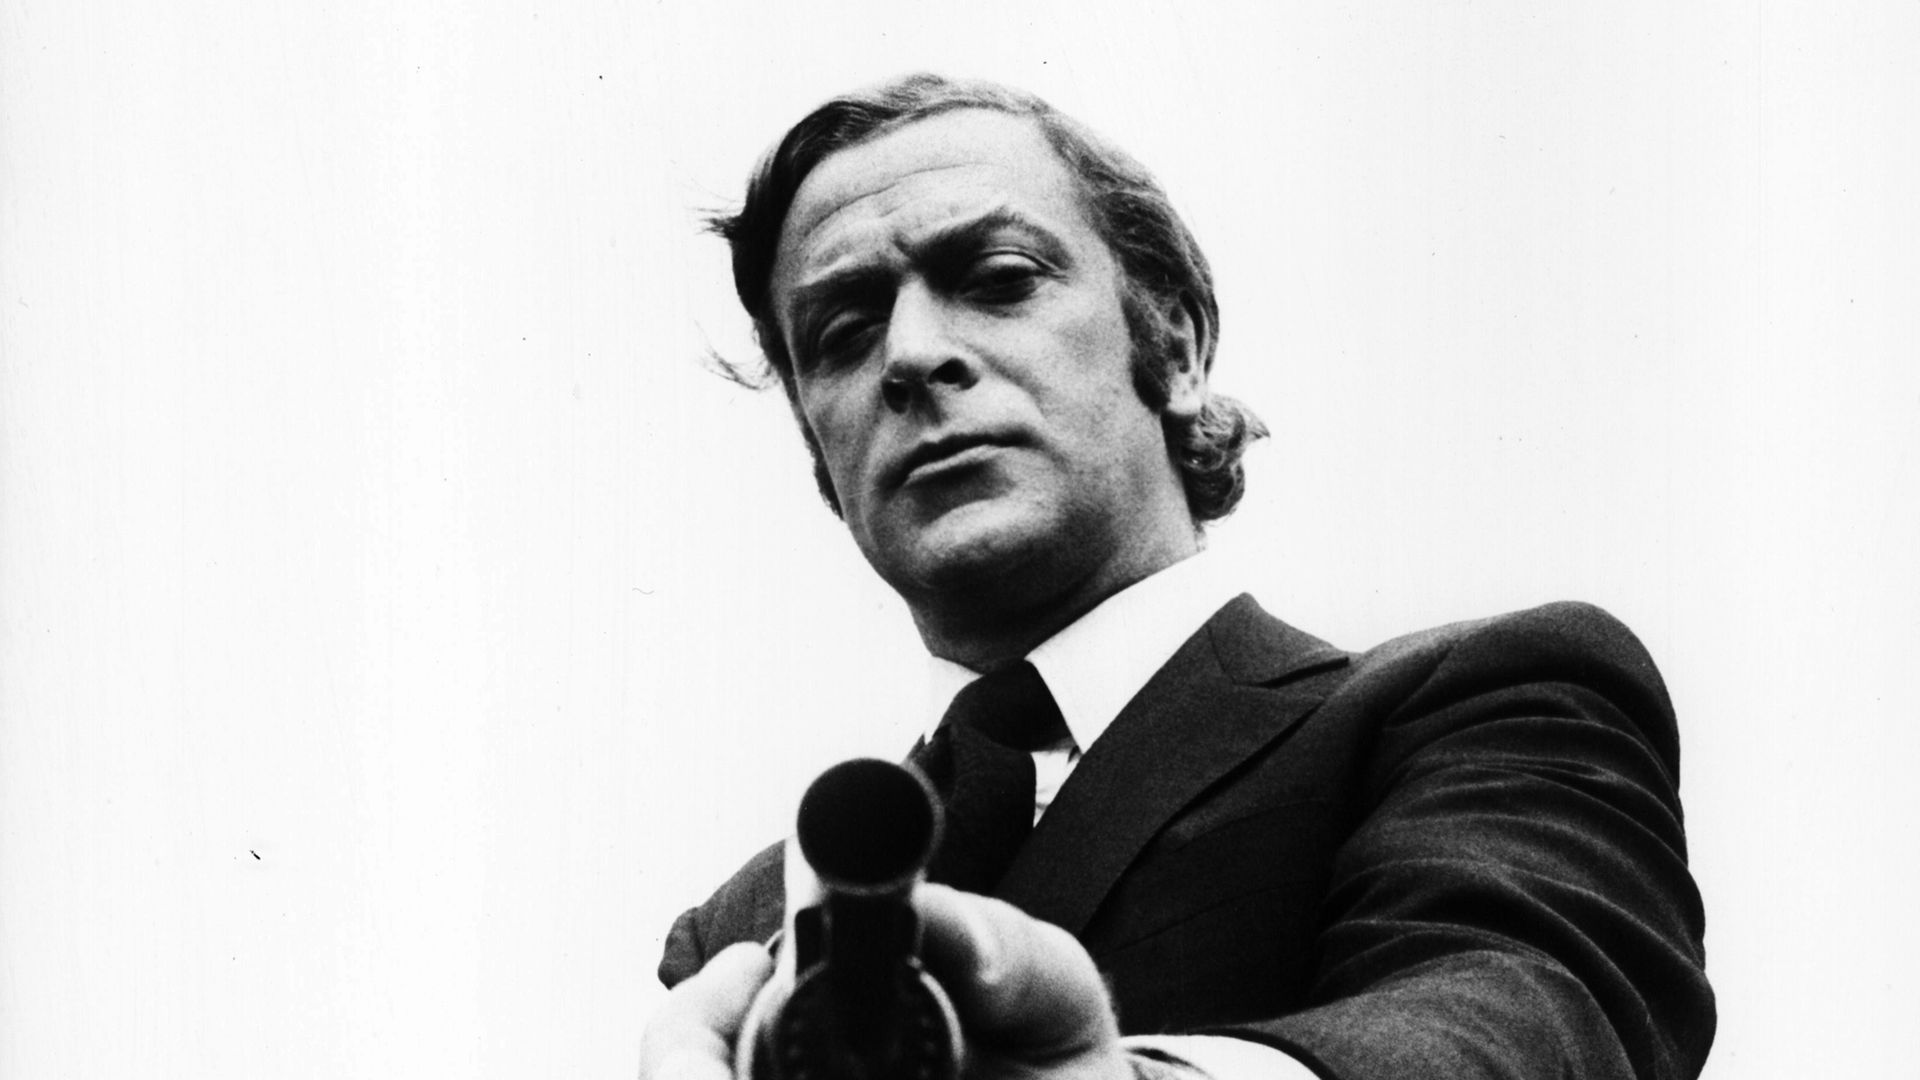 Portrait of actor Michael Caine pointing a gun towards the camera, as he appears in the film 'Get Carter', 1971. (Photo by Stanley Bielecki Movie Collection/Getty Images) - Credit: Getty Images